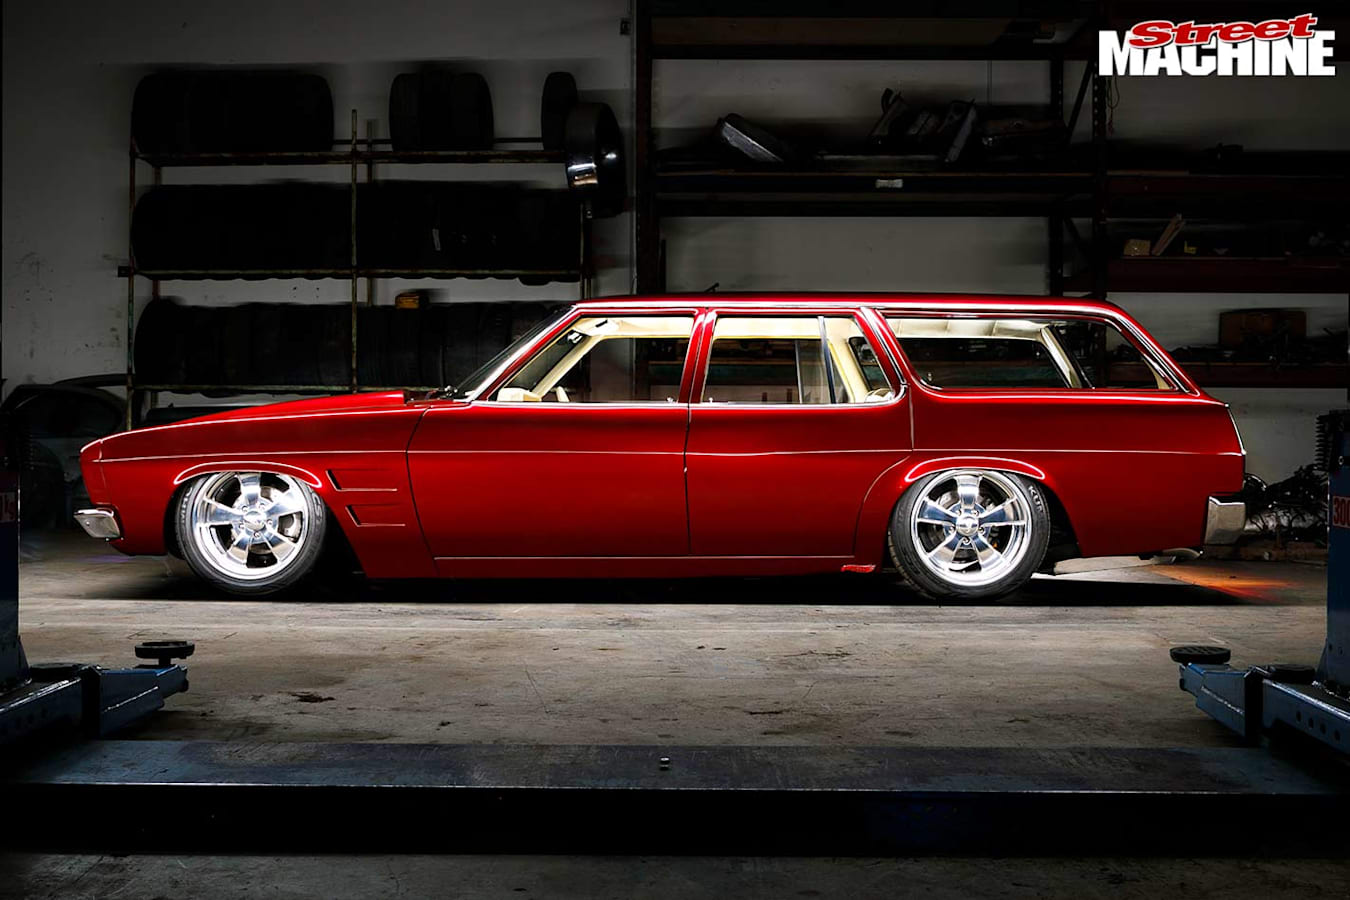 Holden HQ wagon side